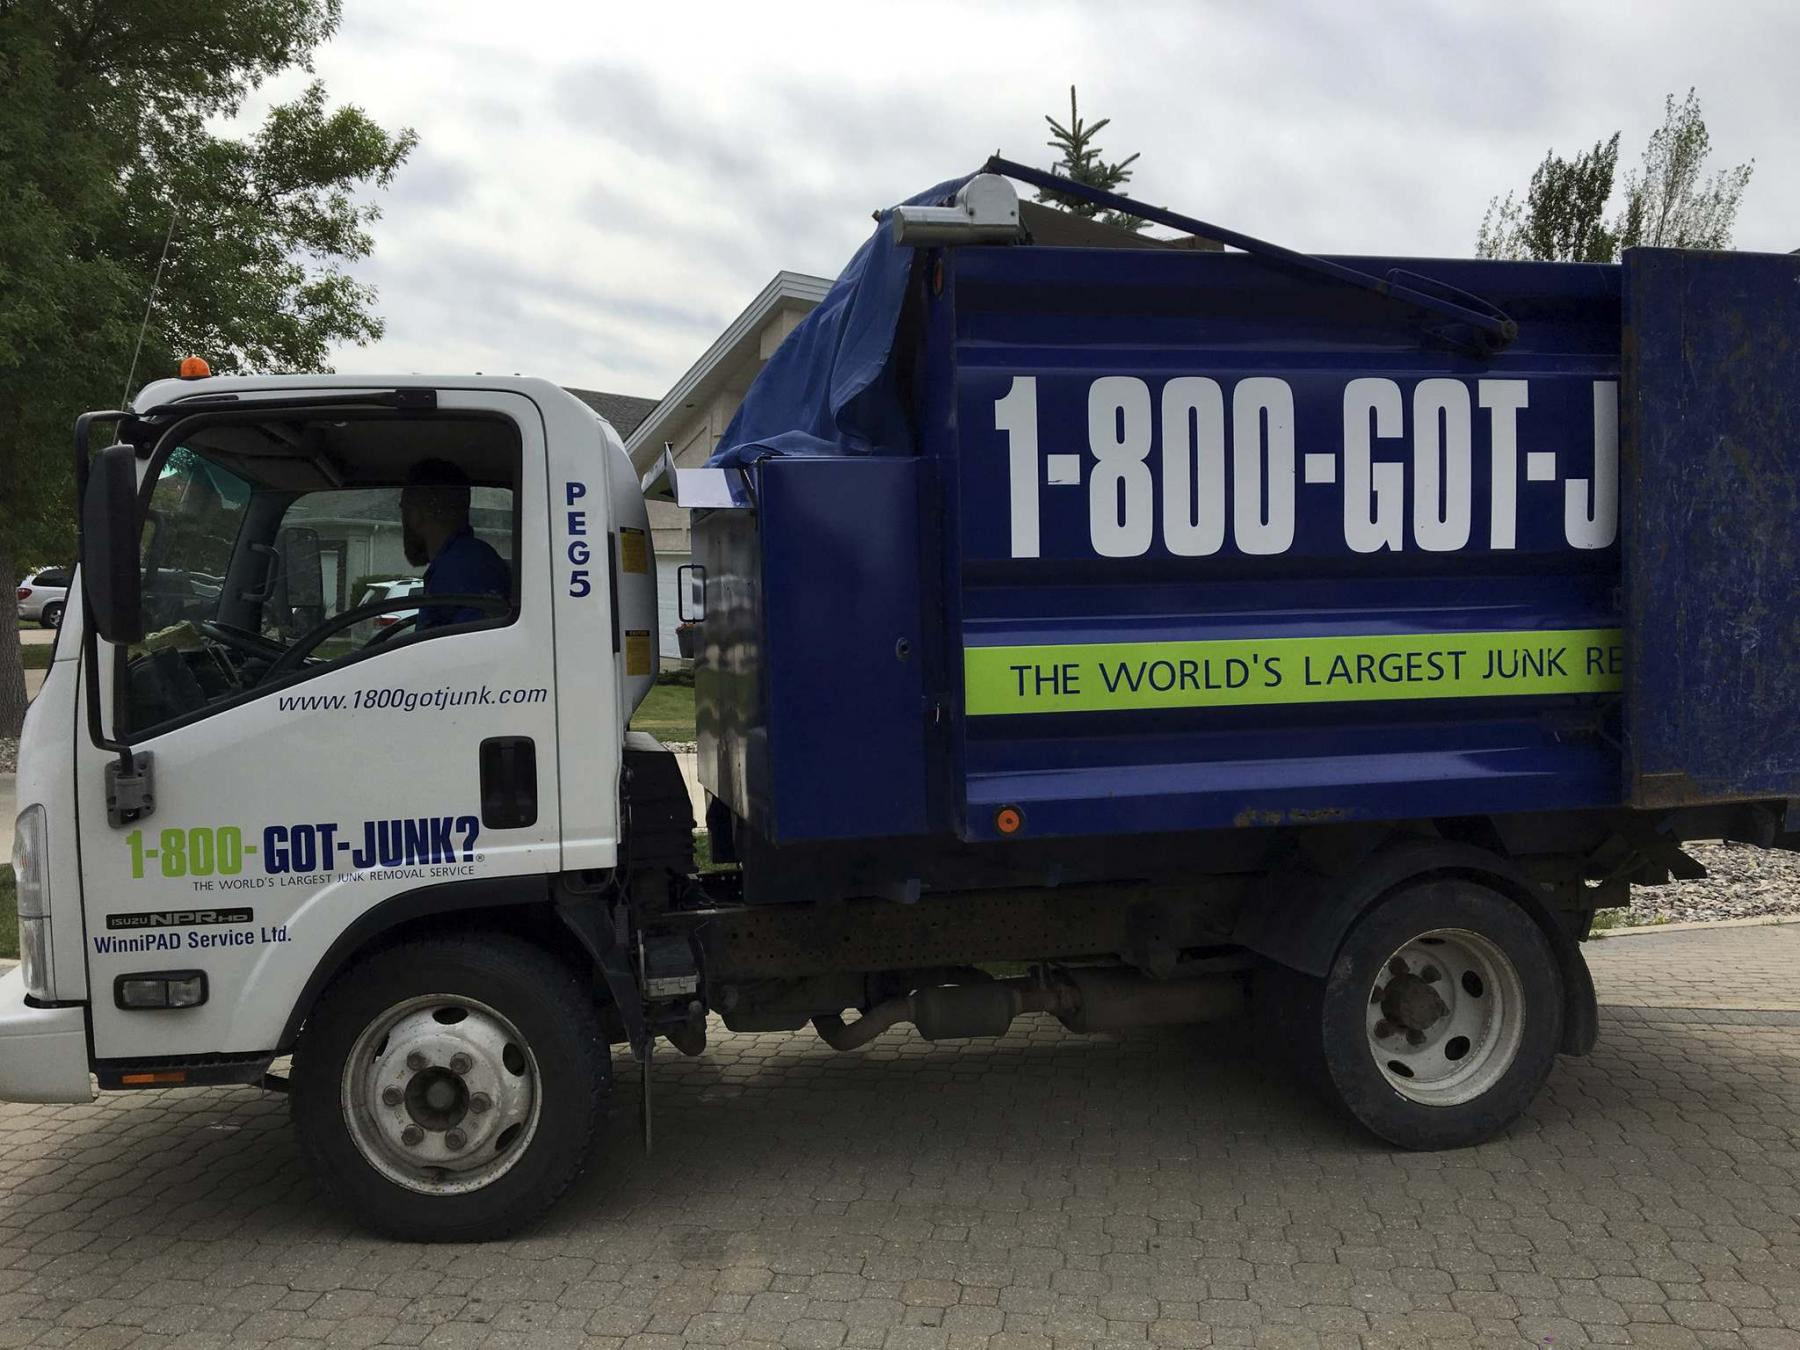 <p>Marc LaBossiere / Winnipeg Free Press</p><p>The 1-800-GOT-JUNK truck is equipped with a retractable tarp to avoid any mishaps en route to the dump. </p>